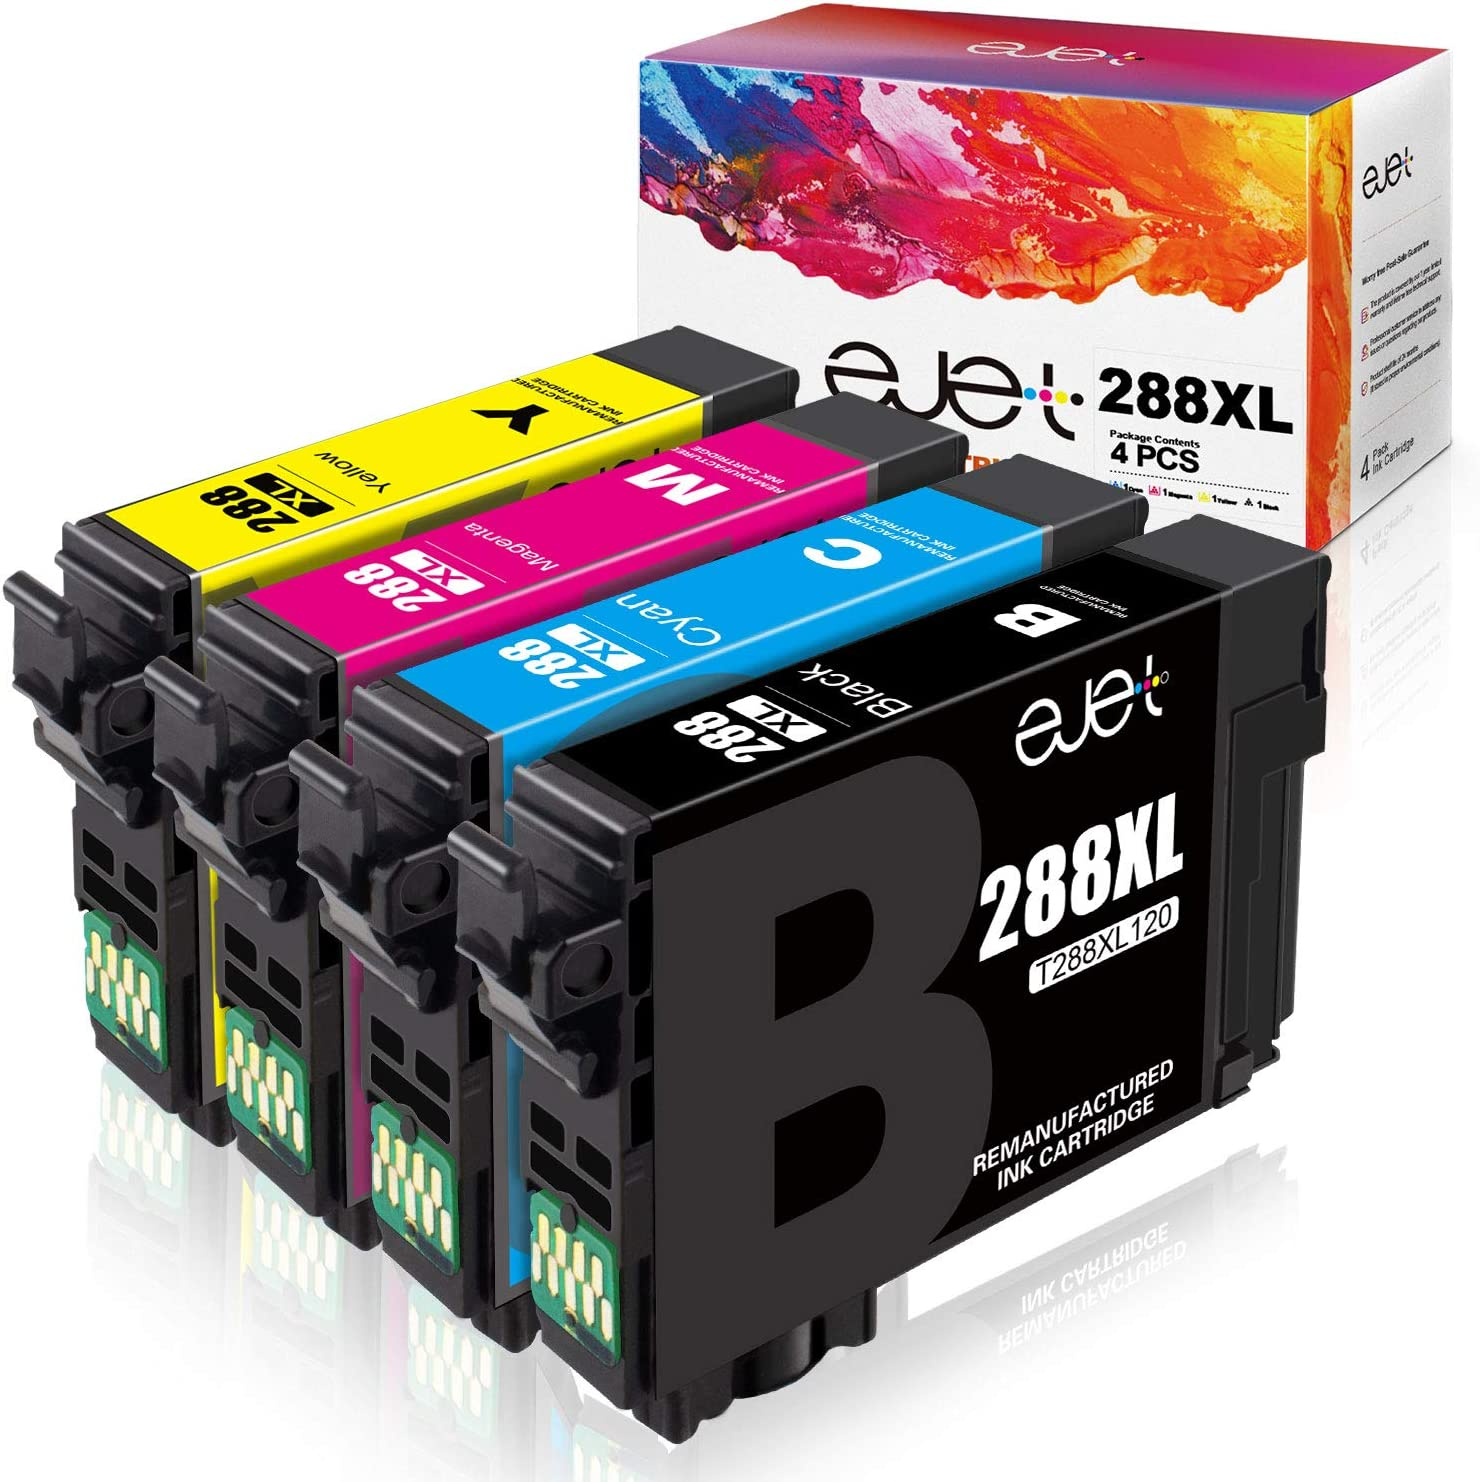 ejet Remanufactured Ink Cartridge Replacement for Epson 288 288XL Ink Cartridges for Expression Home XP-440 XP-330 XP-340 XP-430 XP-434 XP-446 Printer Tray(1 Black, 1 Cyan, 1 Magenta, 1 Yellow) 4 Pack